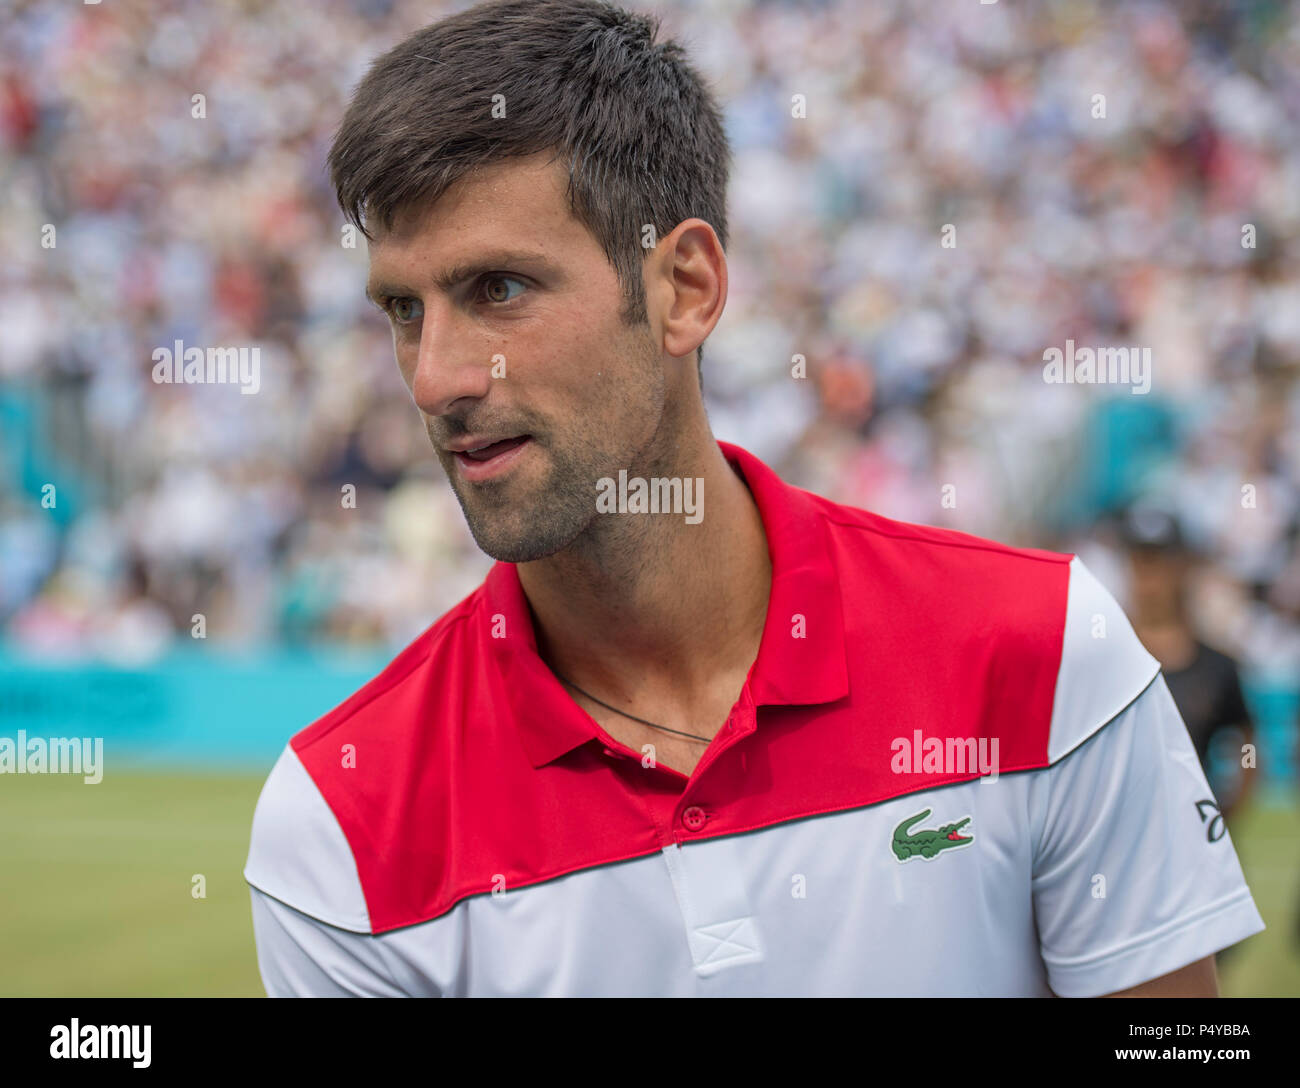 The Queen's Club, London, UK. 23 June, 2018. Fever Tree Championships Day 6 semi-final match on centre court. 12 times grand slam champion Novak Djokovic (SRB) wins his match against Jeremy Chardy (FRA) to enter the final against Marin Cilic. Credit: Malcolm Park/Alamy Live News. - Stock Image